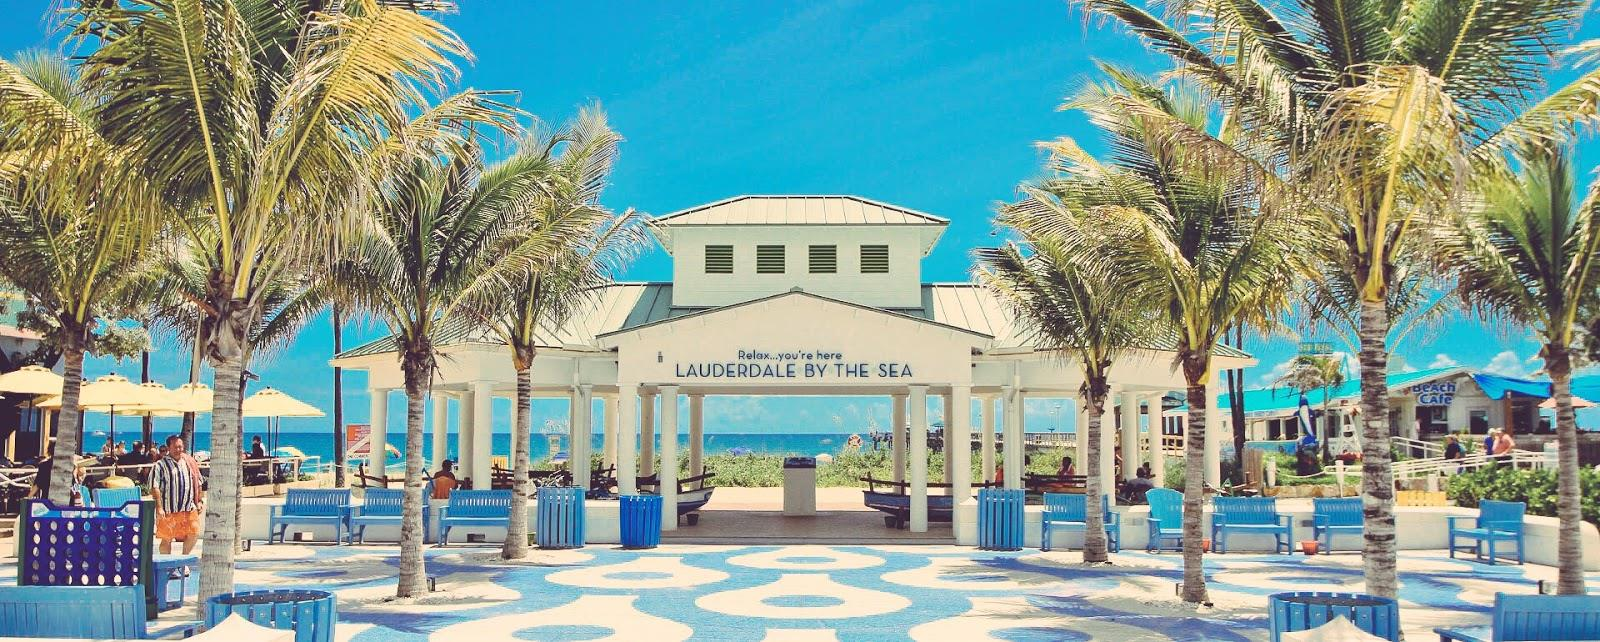 Beach Pavilion@Lauderdale-By-The-Sea